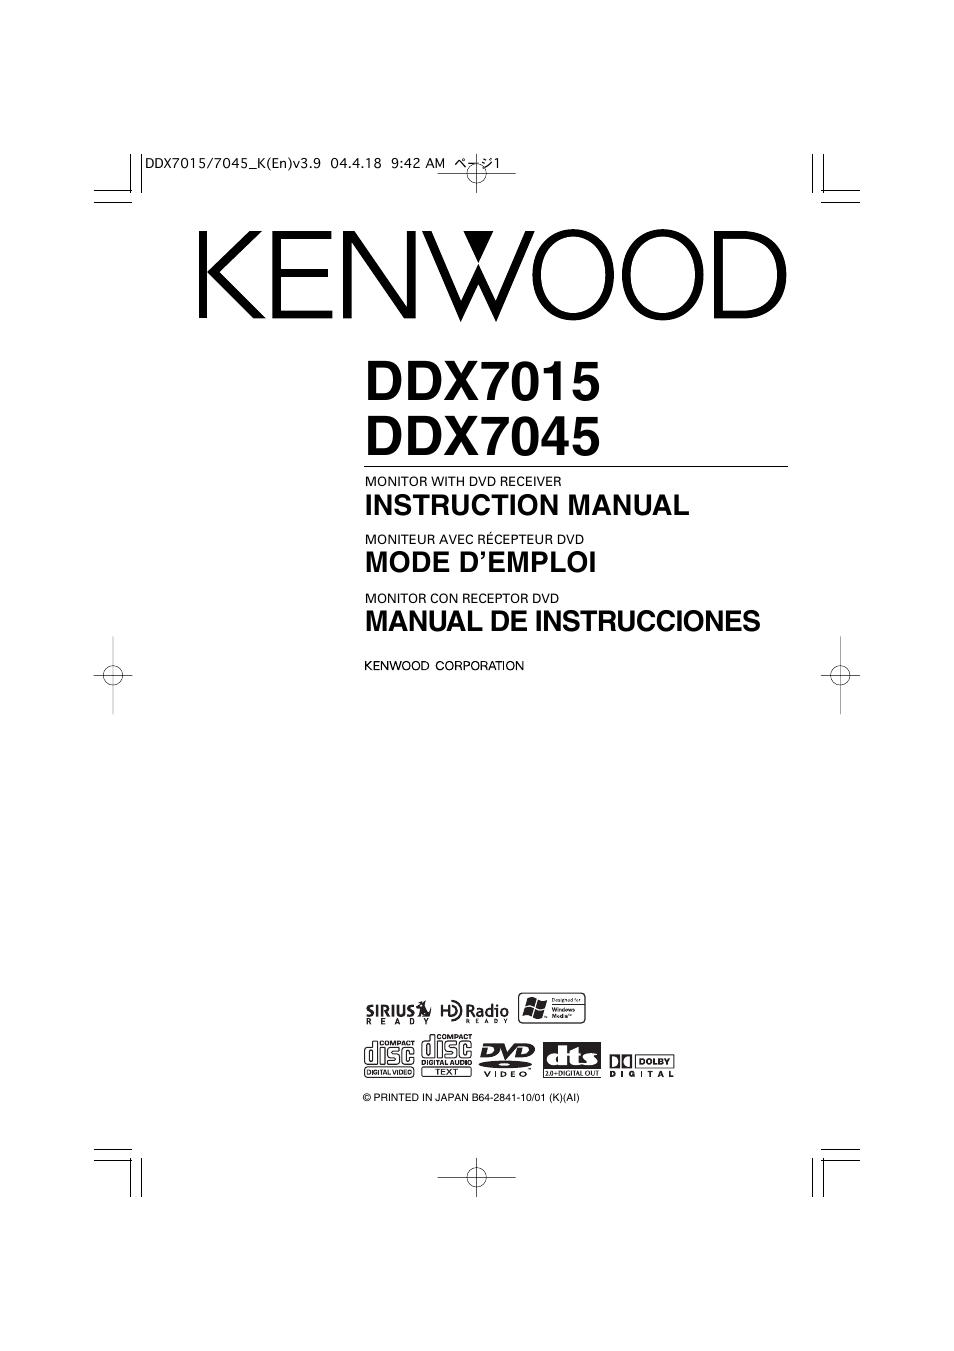 Kenwood Excelon Ddx7015 Wiring Diagram Kvt 719dvd Amazing Photos Electrical Circuit